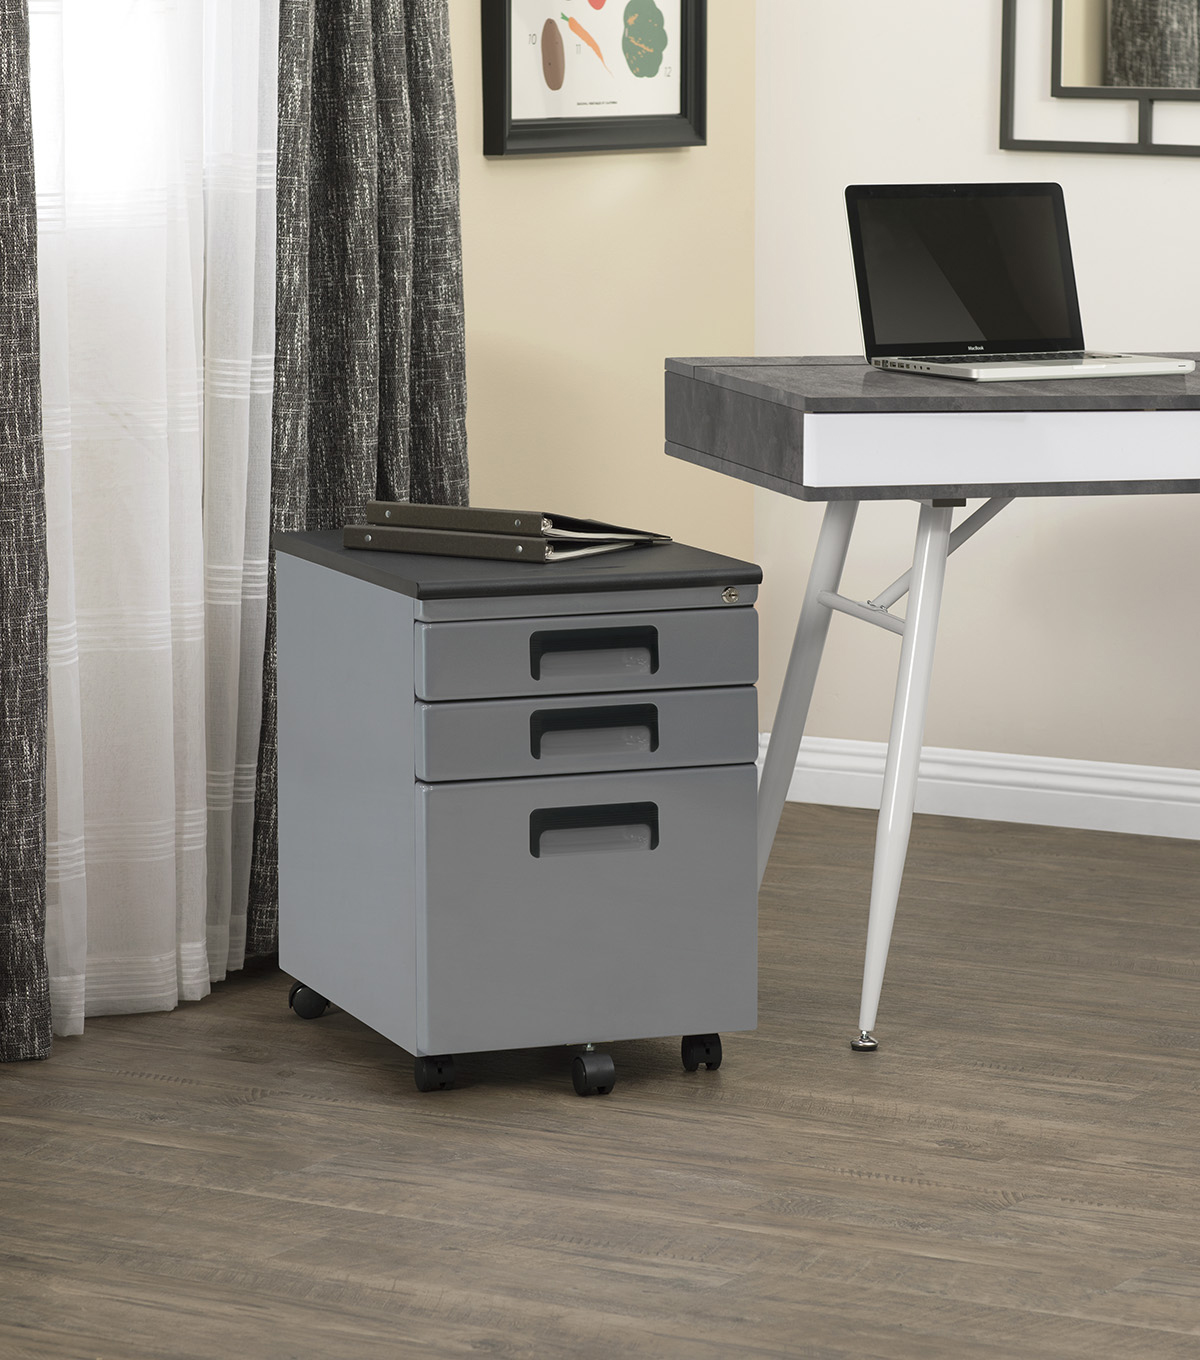 Studio Designs 3 Drawer Rolling File Cabinet-Gray